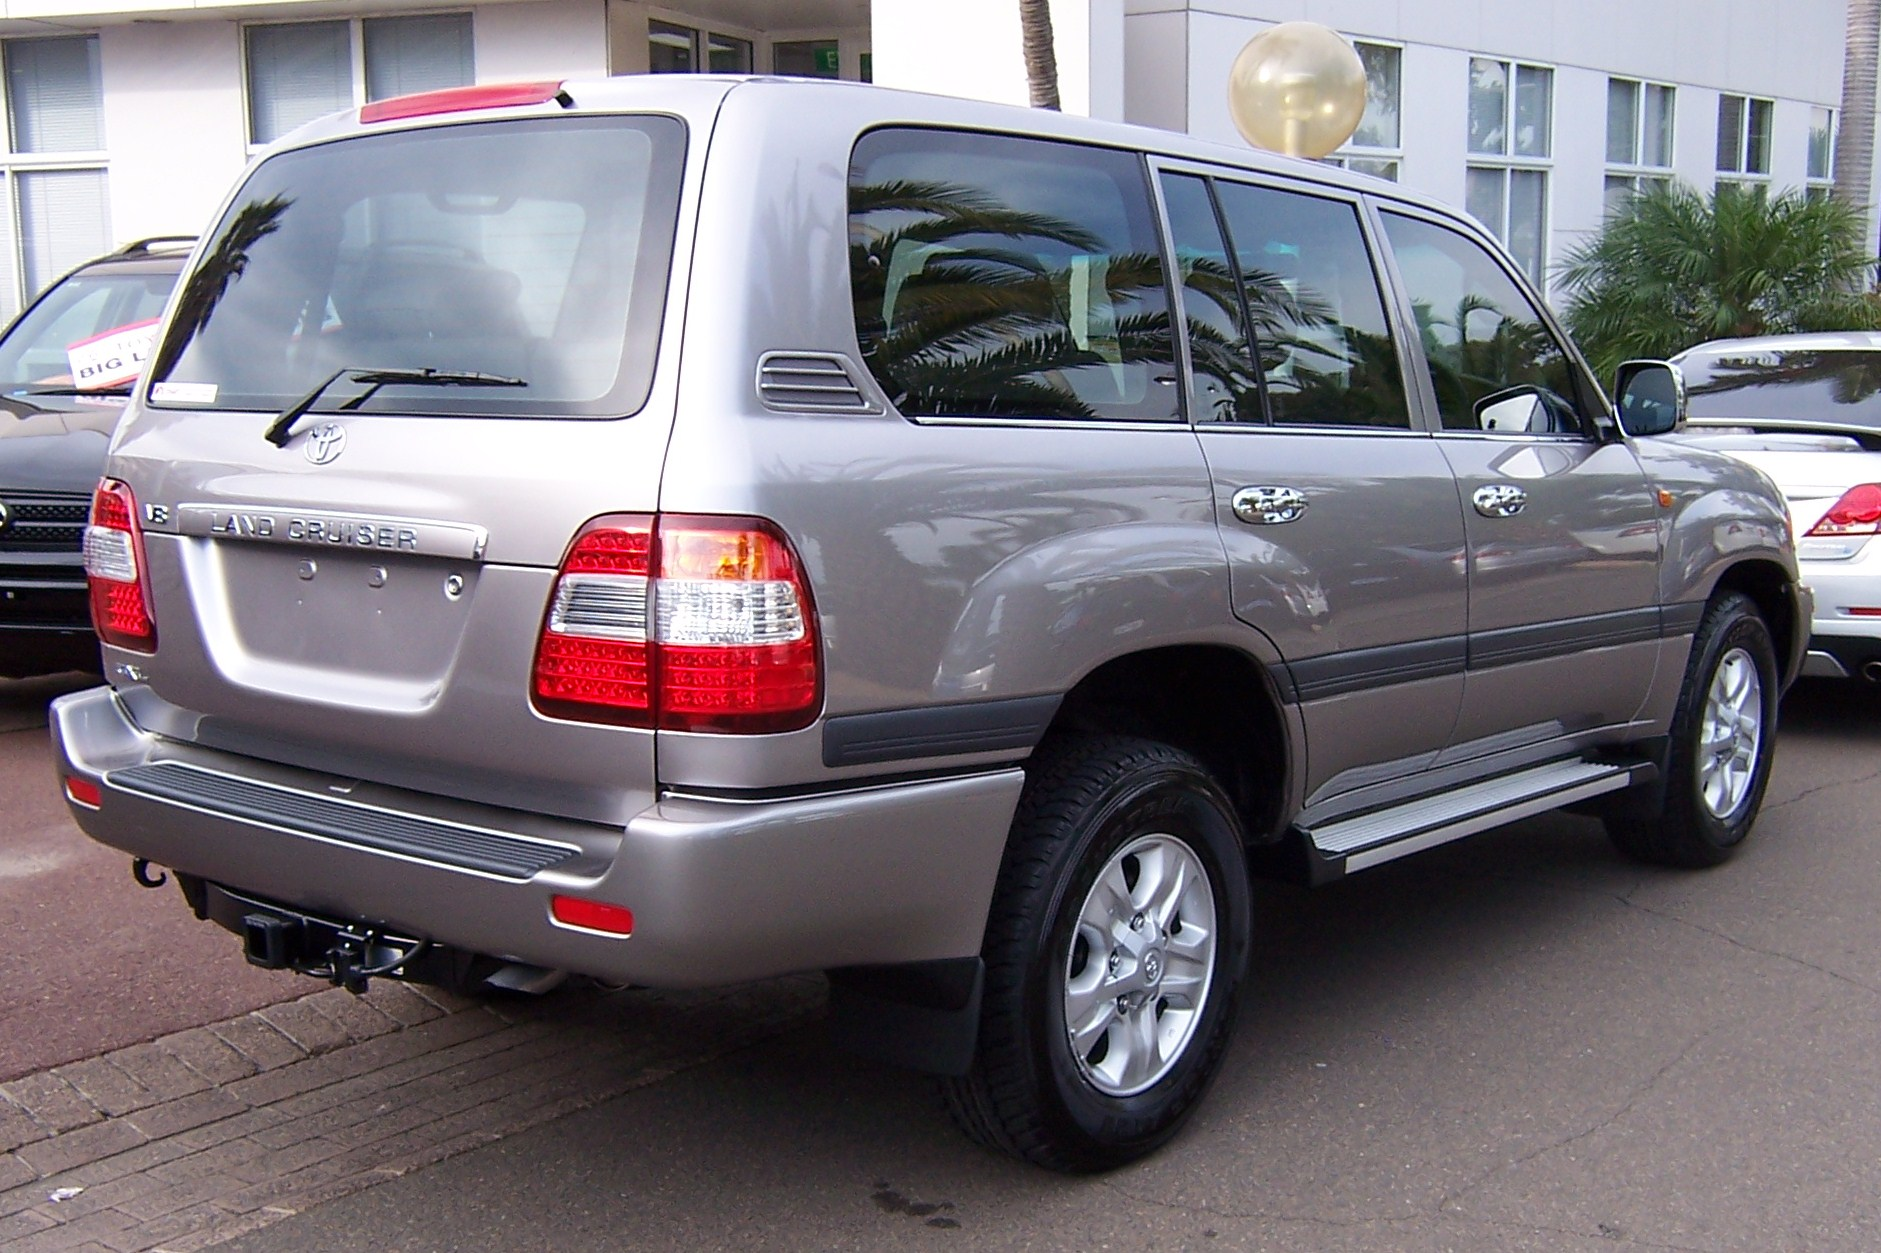 Superb File:2007 Toyota Land Cruiser (UZJ100R) GXL Wagon (2007 05